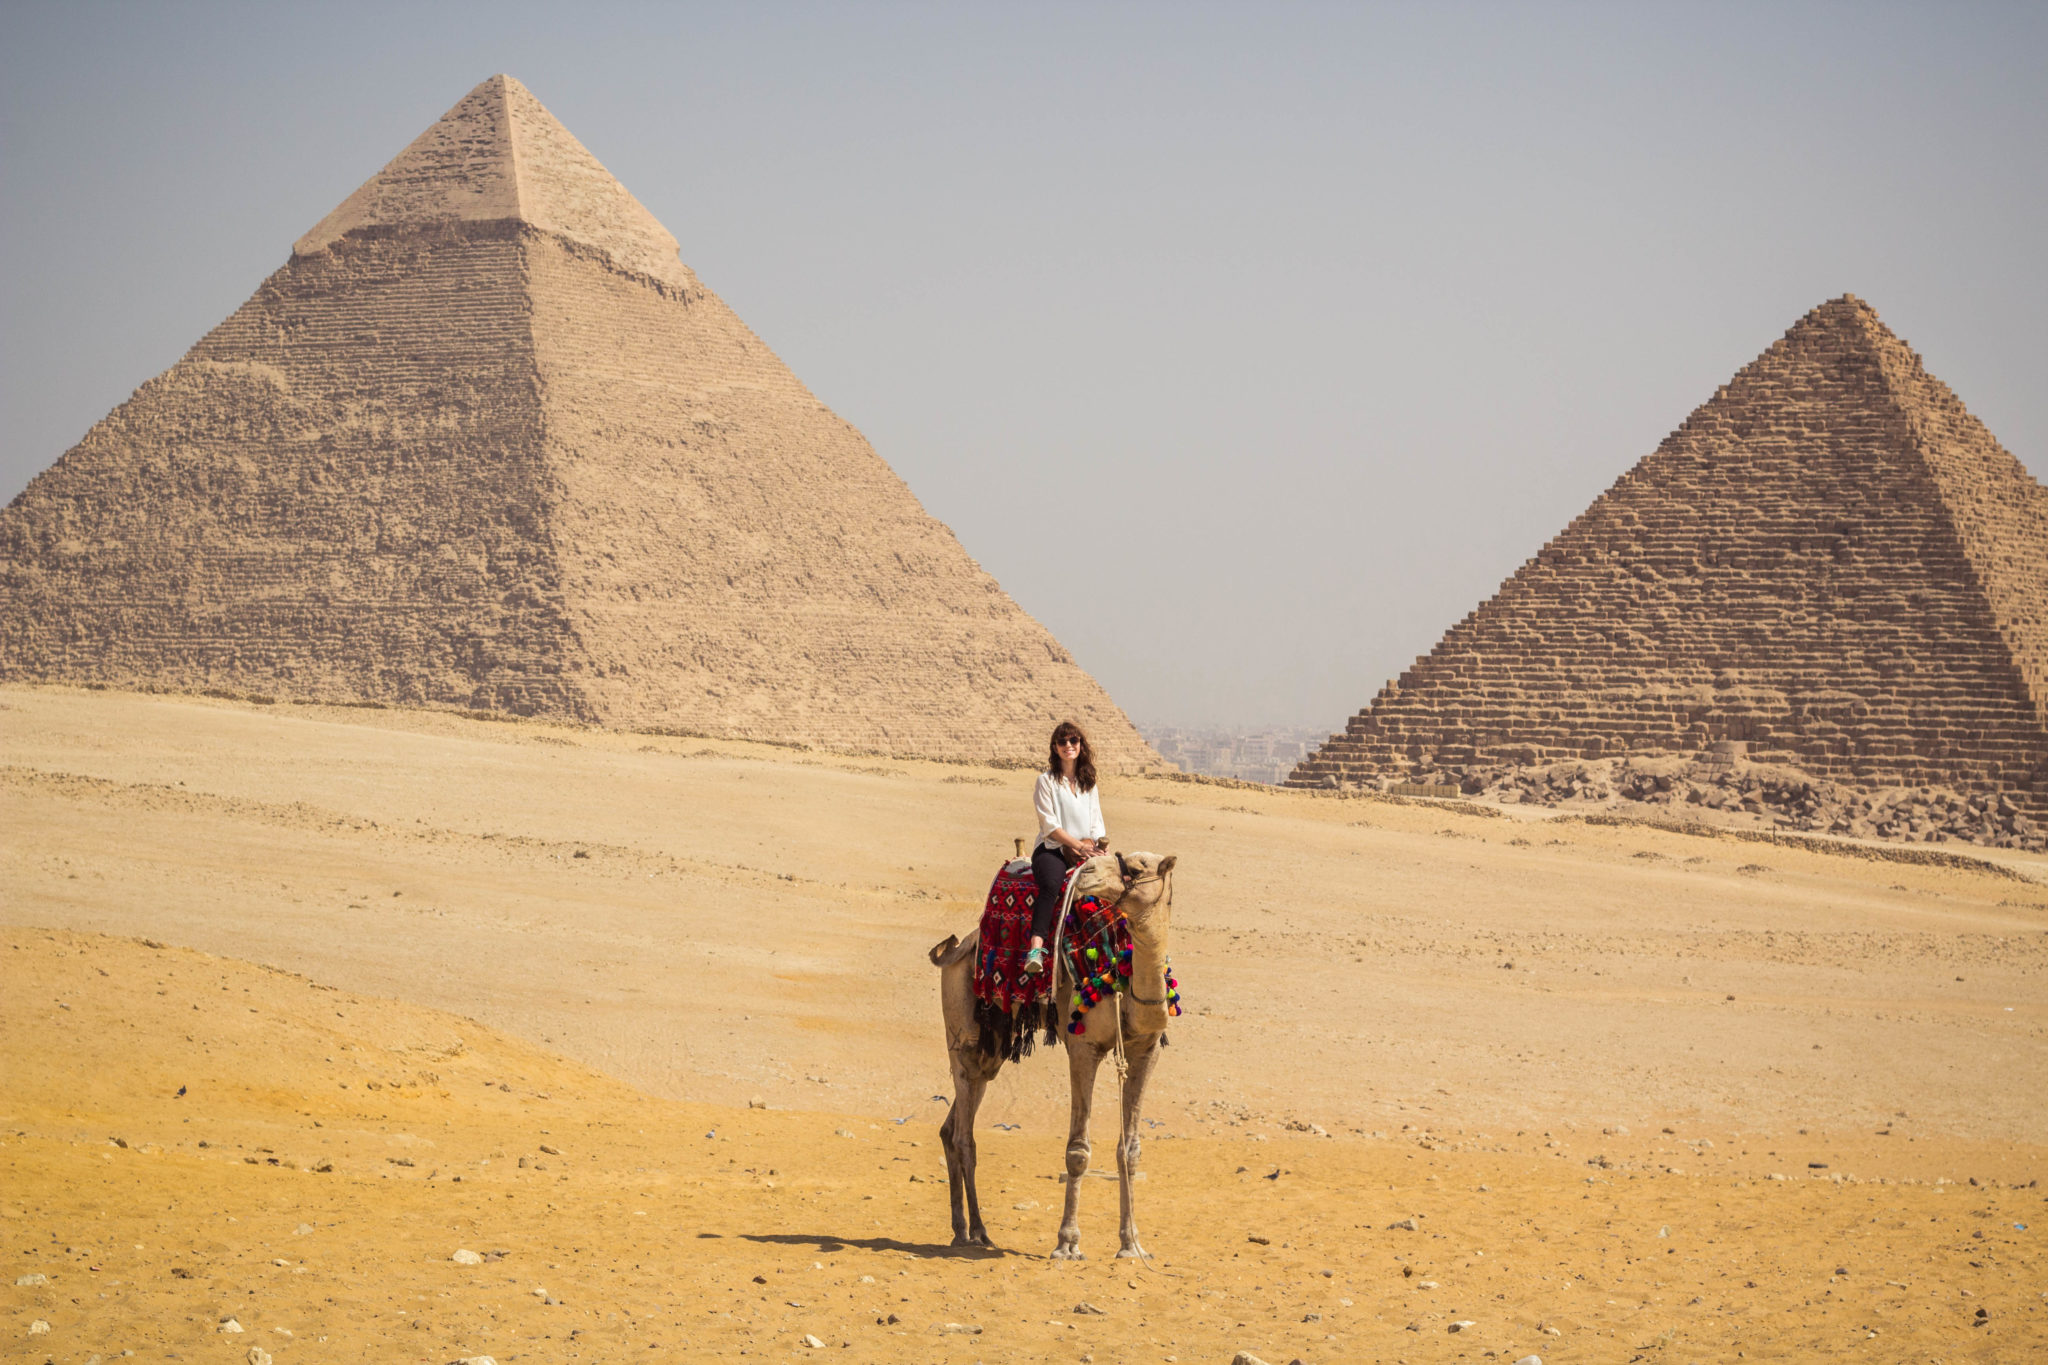 Riding a camel by the Pyramids of Giza in Egypt